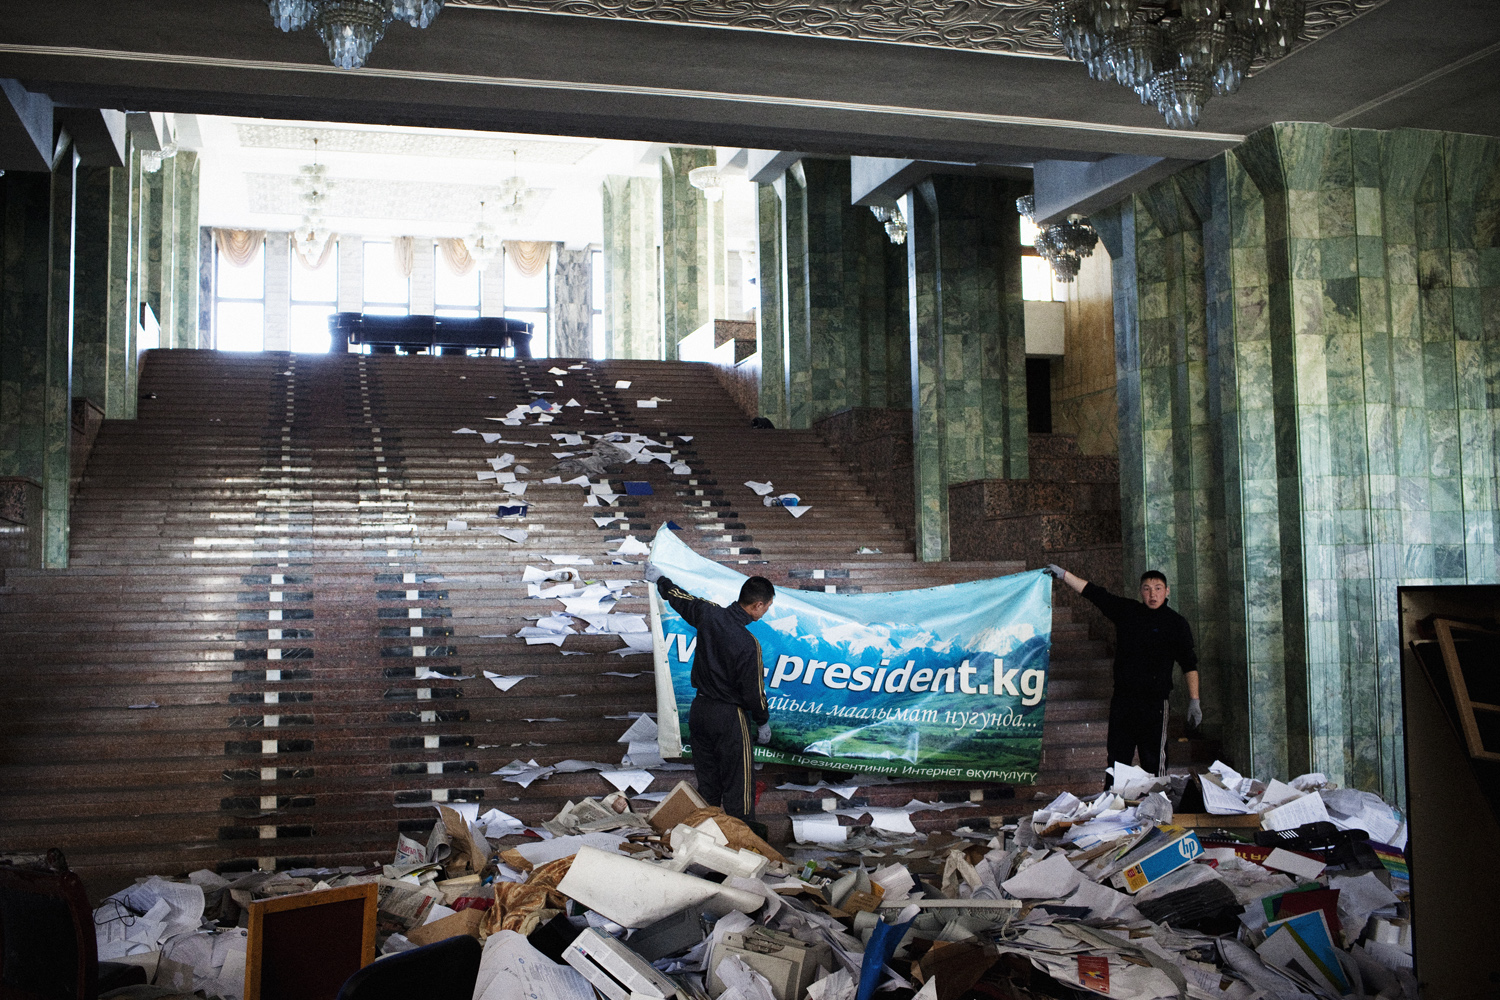 2010. Men clean up the White House in Bishkek following the April uprising, during which President Bakiyev was overthrown and the presidential palace was looted and set on fire.